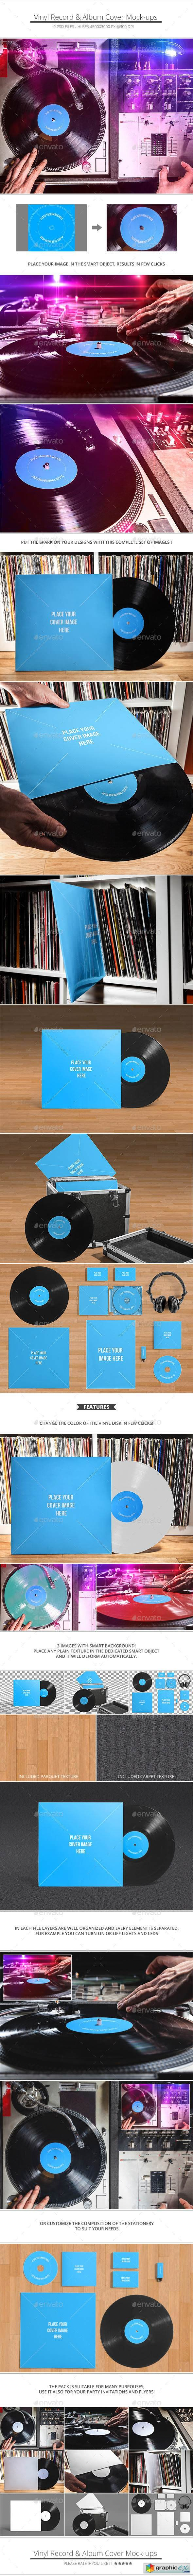 Vinyl Record & Album Cover Mock-ups - Party Pack